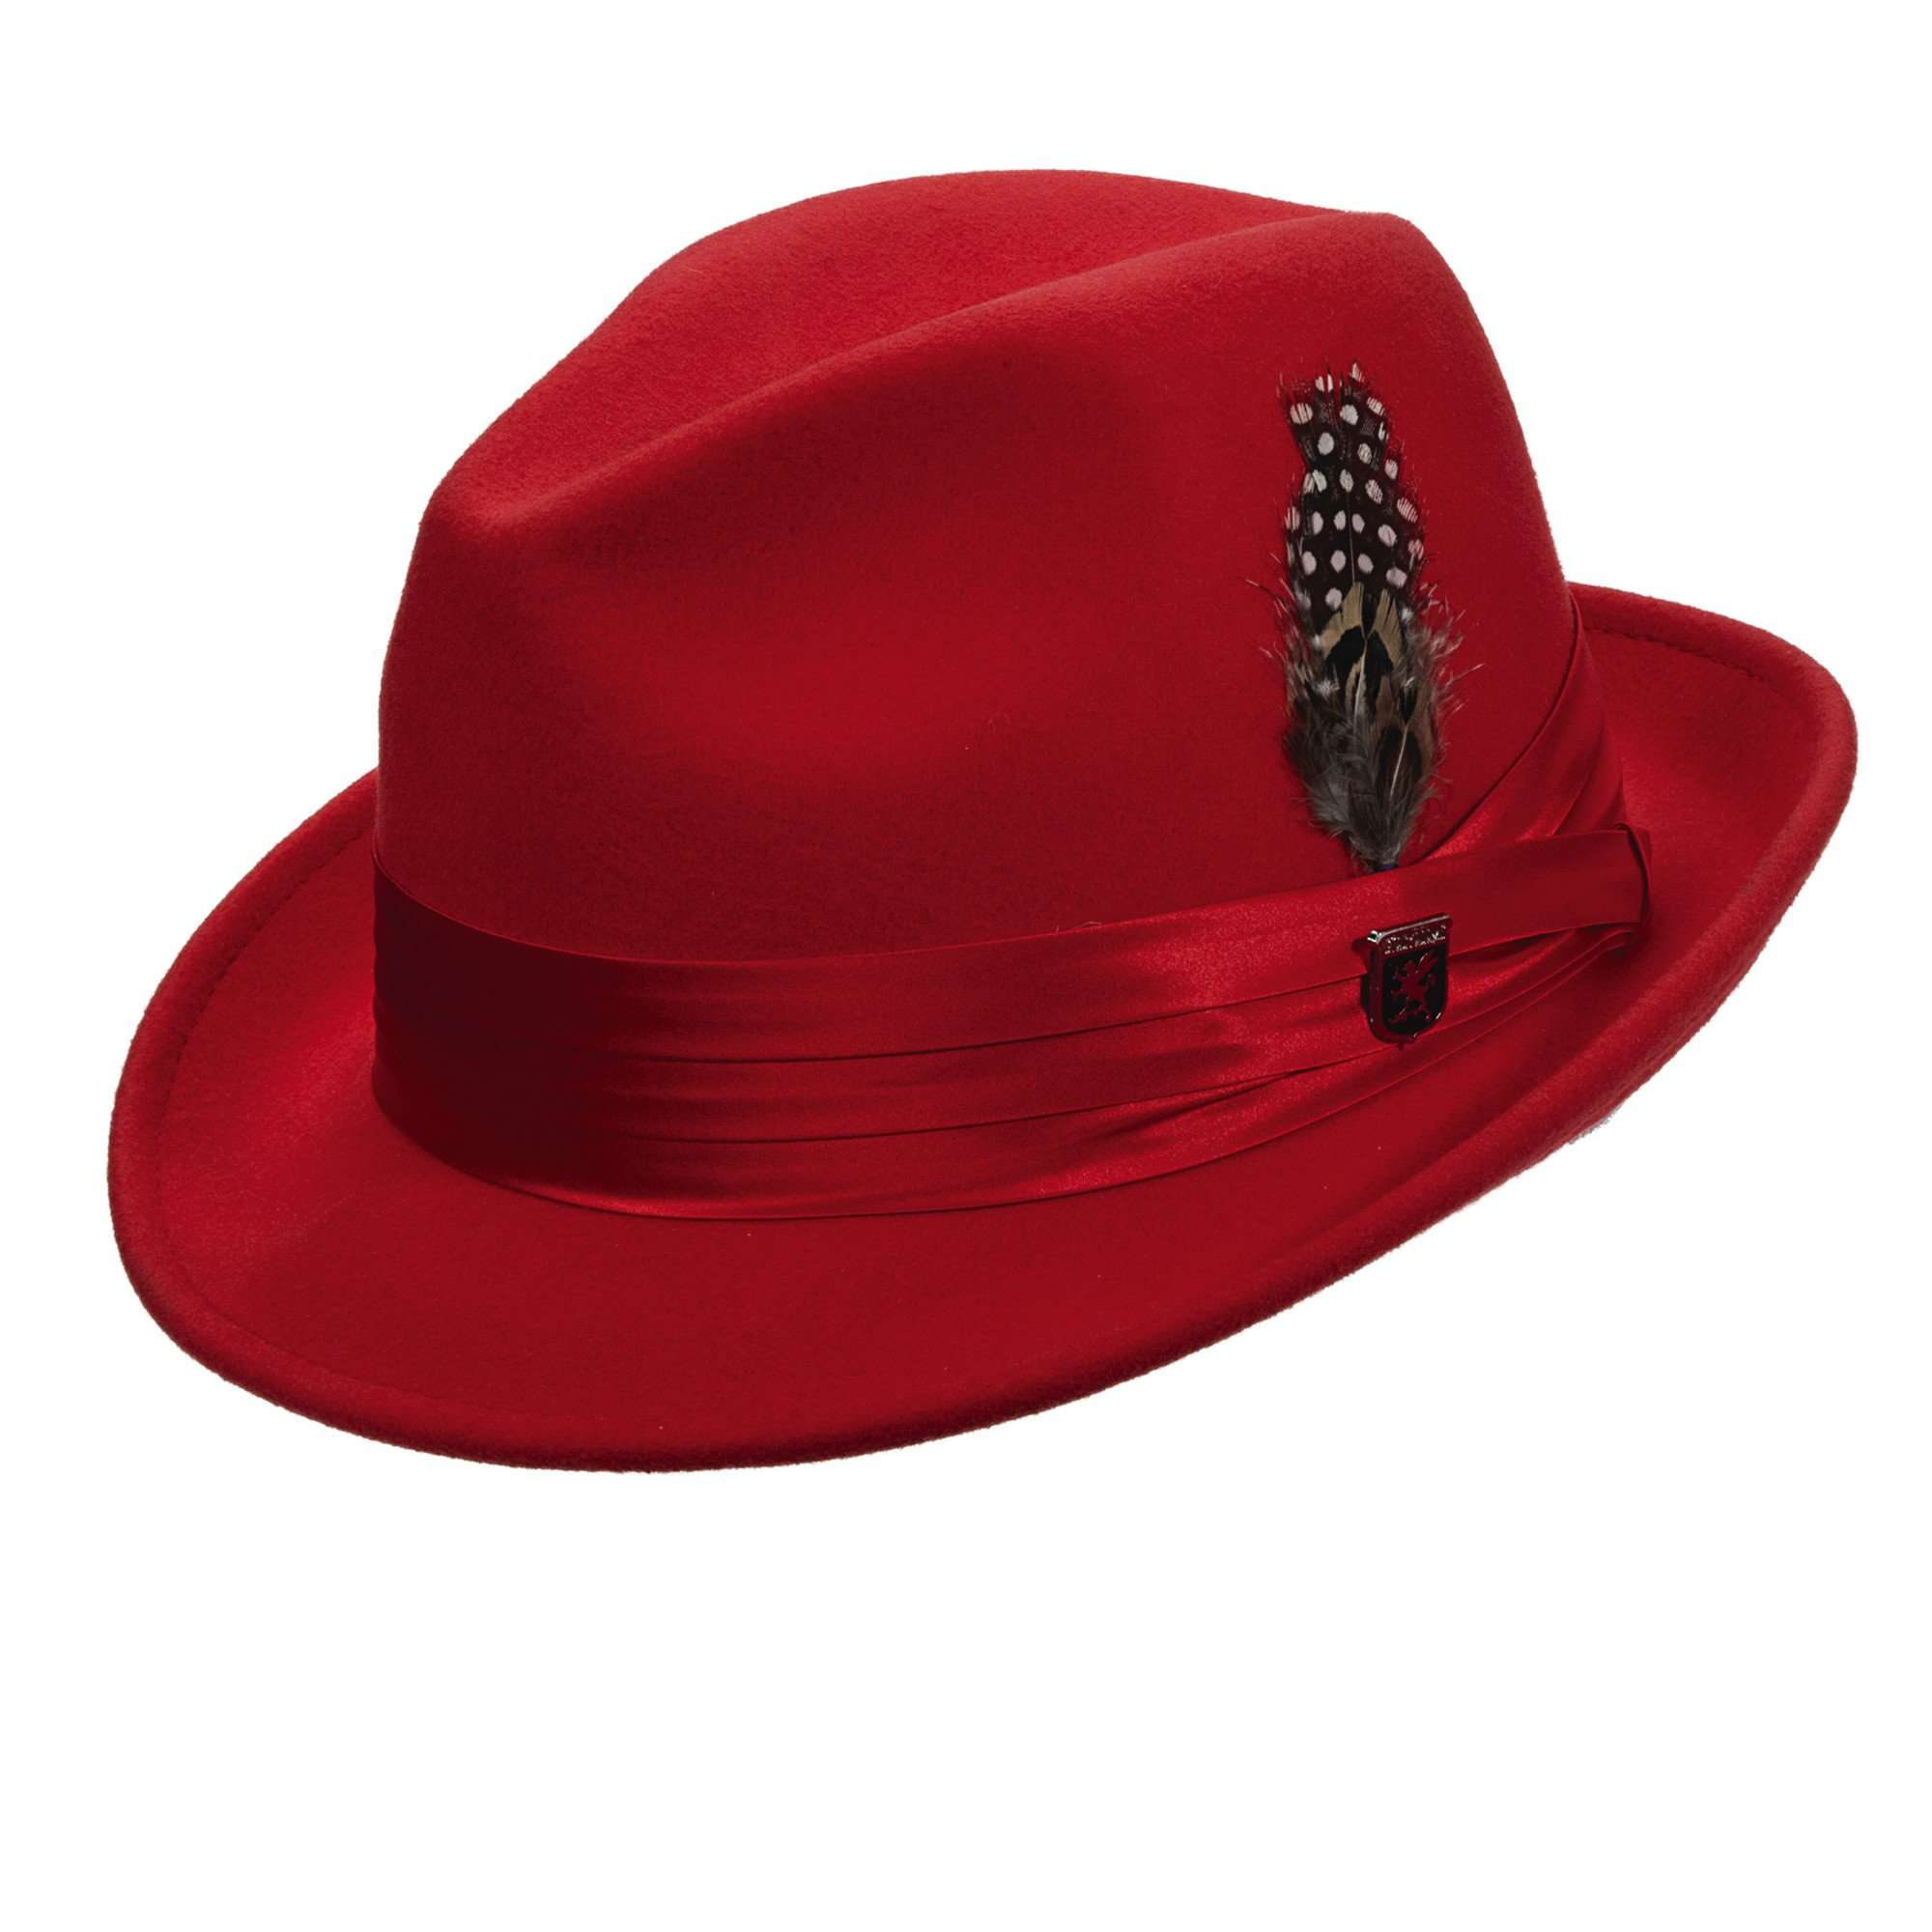 Stacy Adams Snap Brim Fedora - SetarTrading Hats